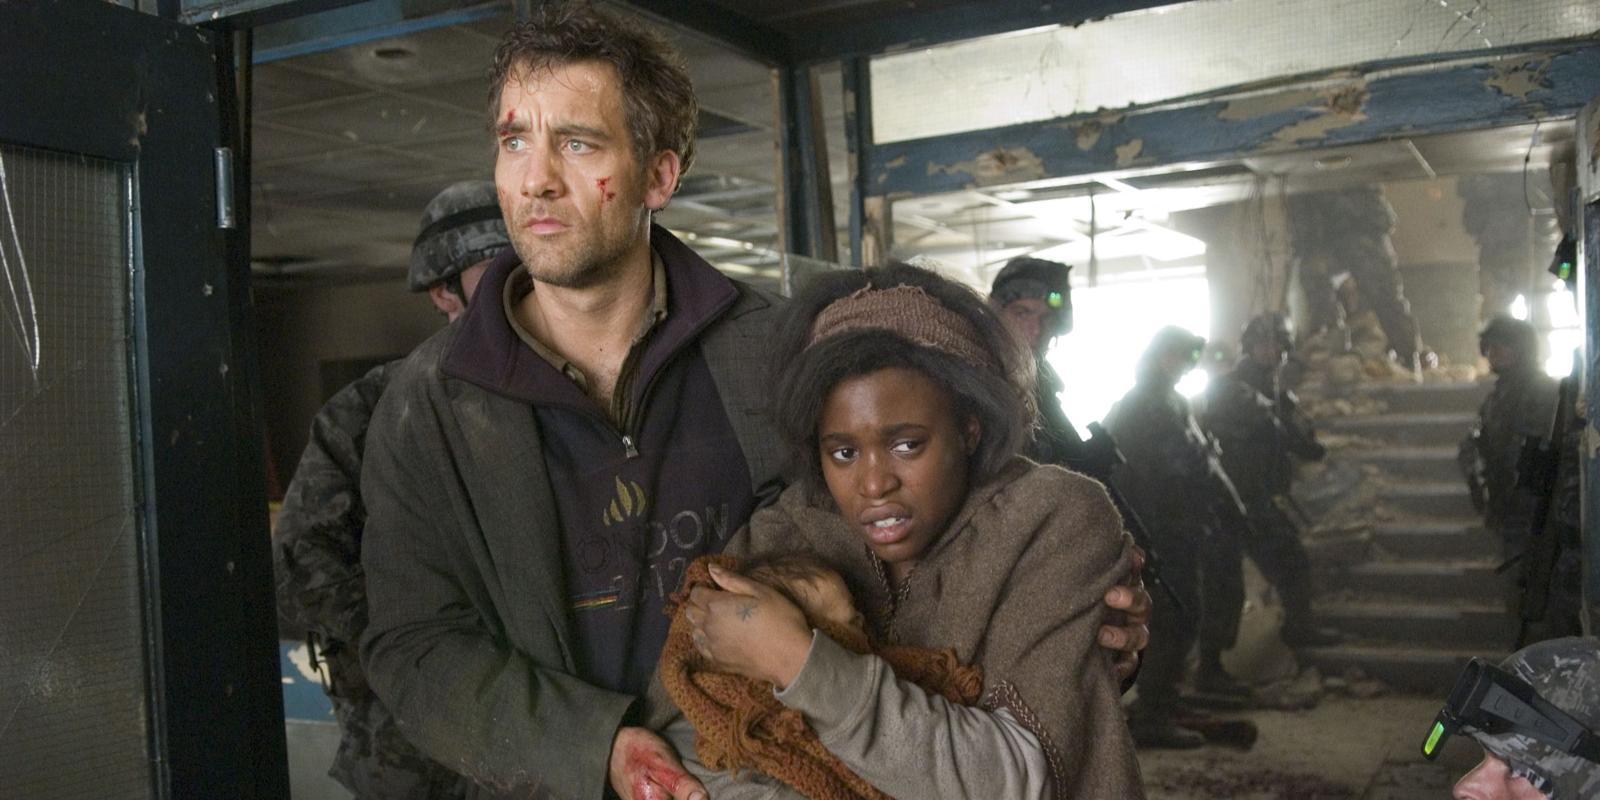 #42) Children of Men (-4) - (2006 - Alfonso Cuarón)